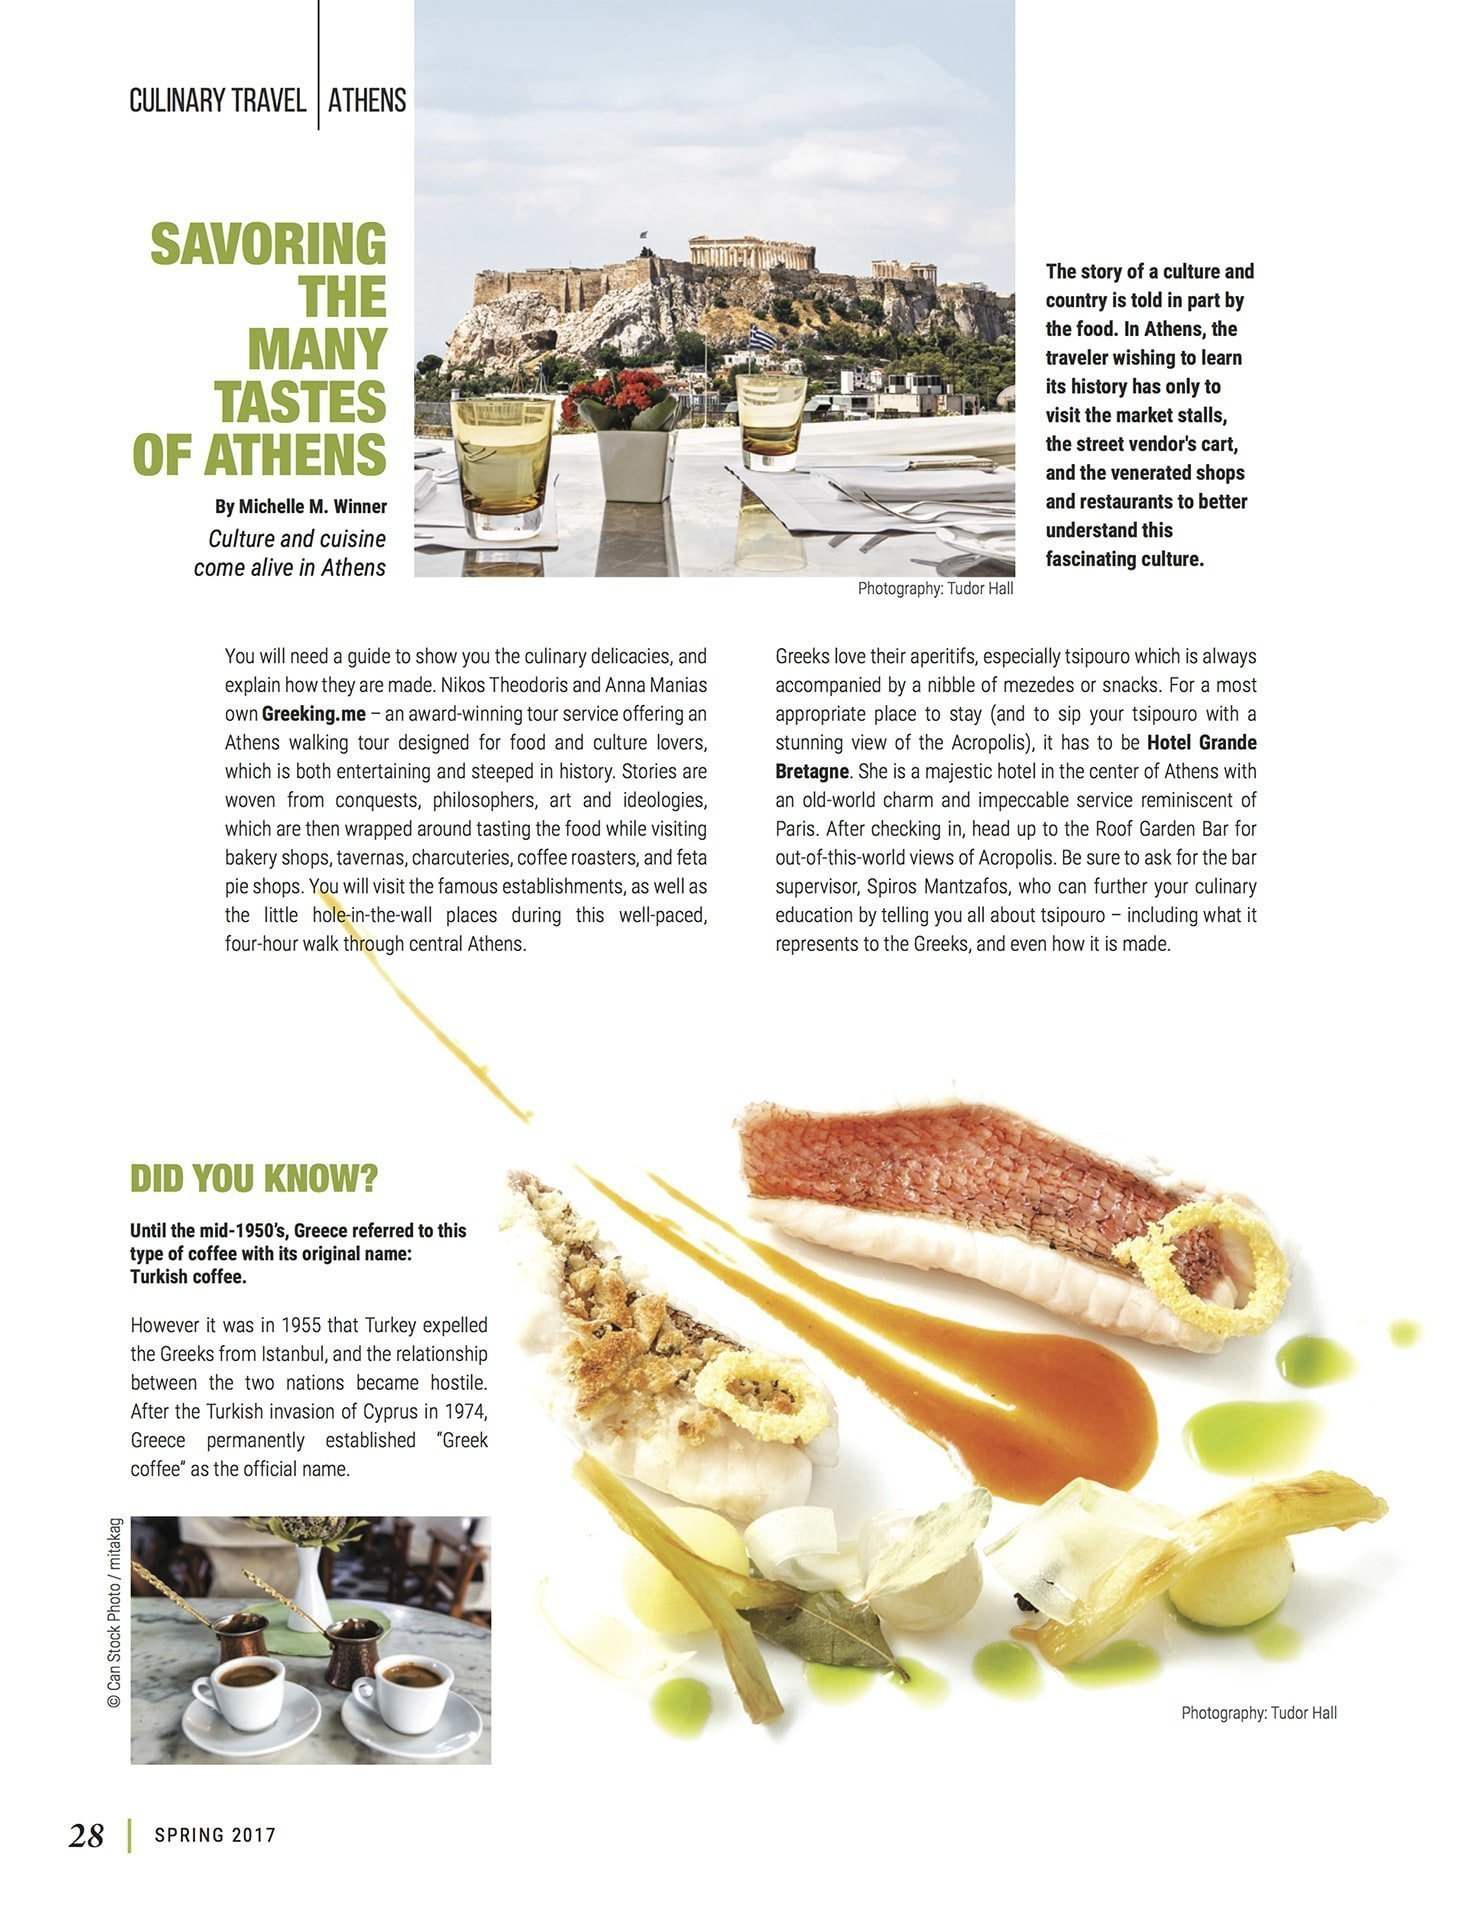 LuxeGetaways - Luxury Travel - Luxury Travel Magazine - Savoring Tastes of Athens - Michelle Winner - Athens Greece - Greek Food